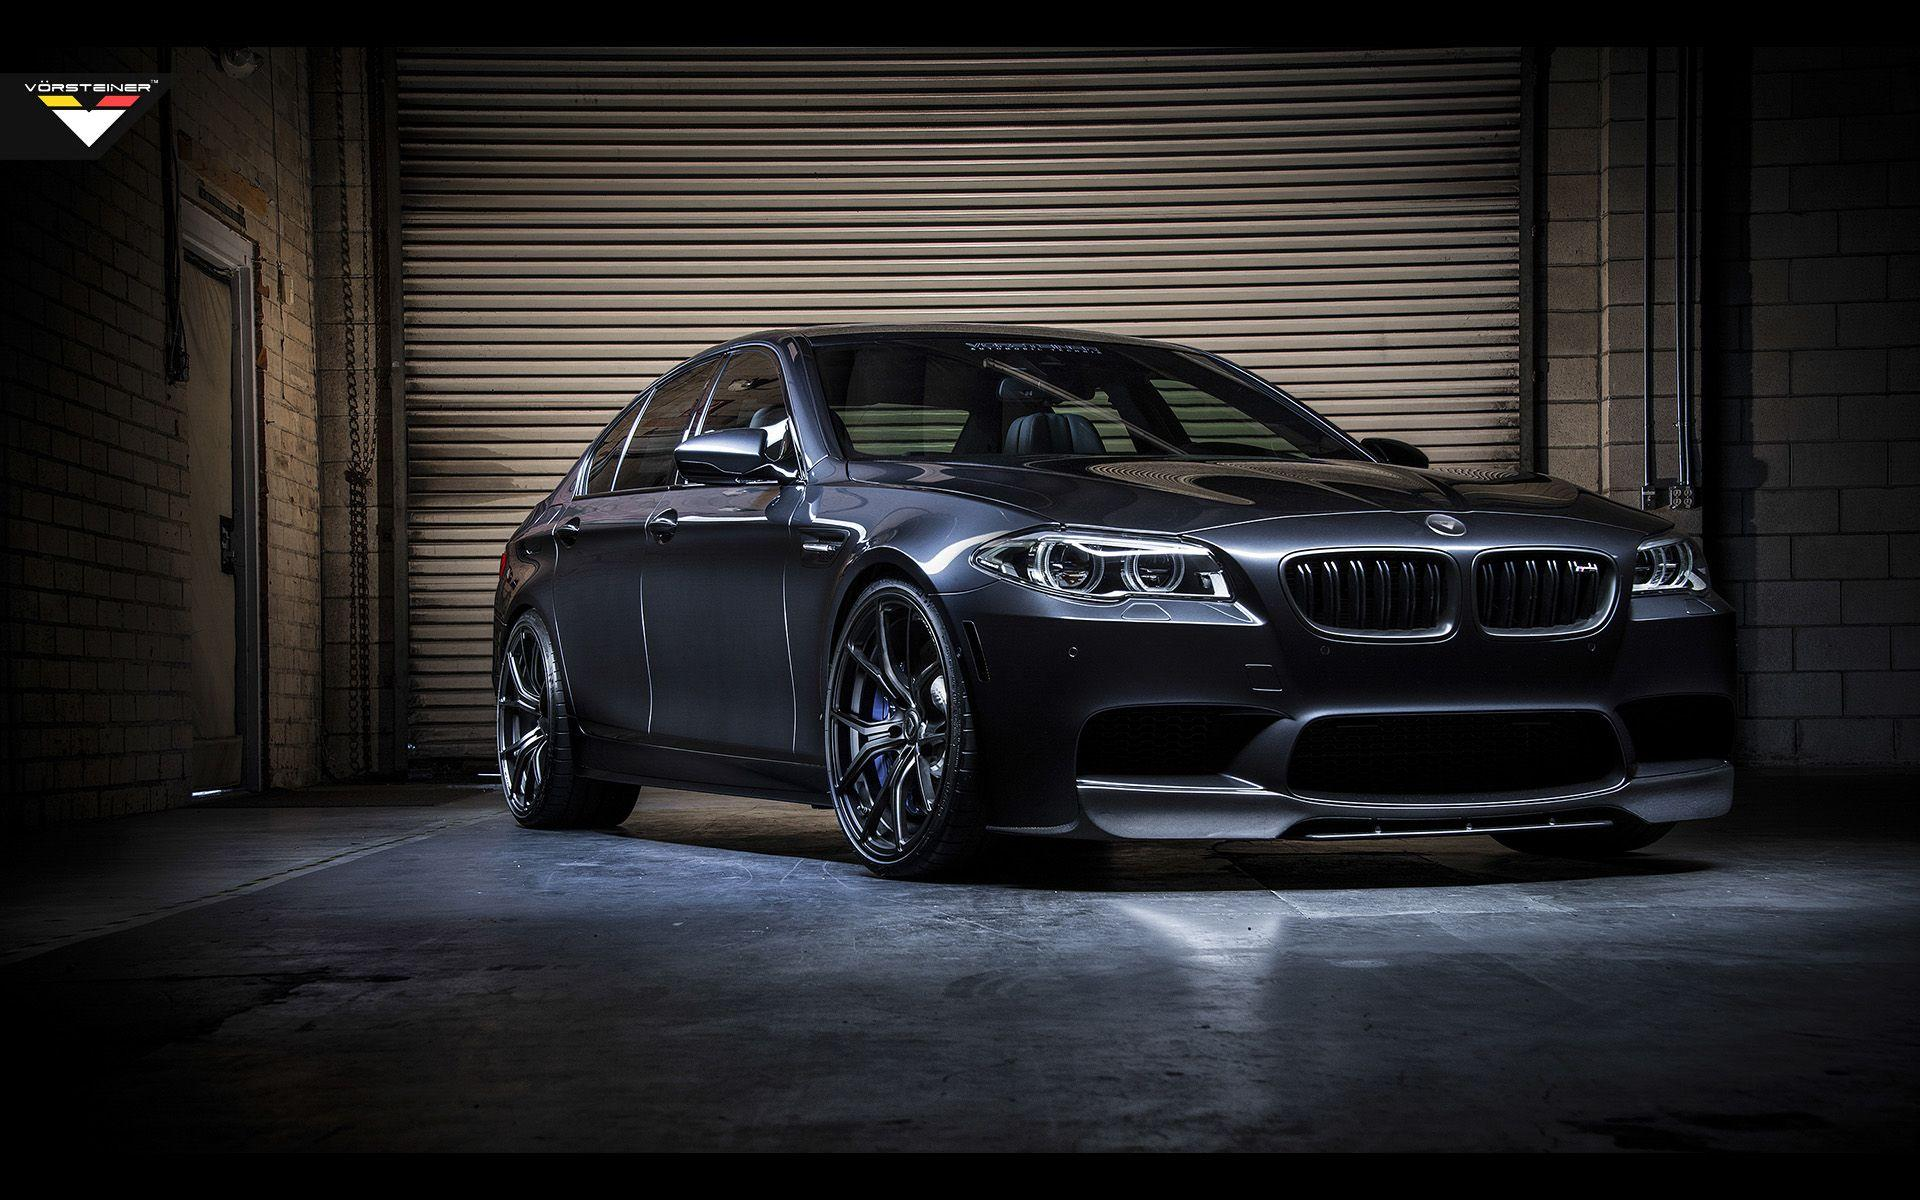 2014 BMW F10 M5 By Vorsteiner Wallpaper | HD Car Wallpapers| ID #3988